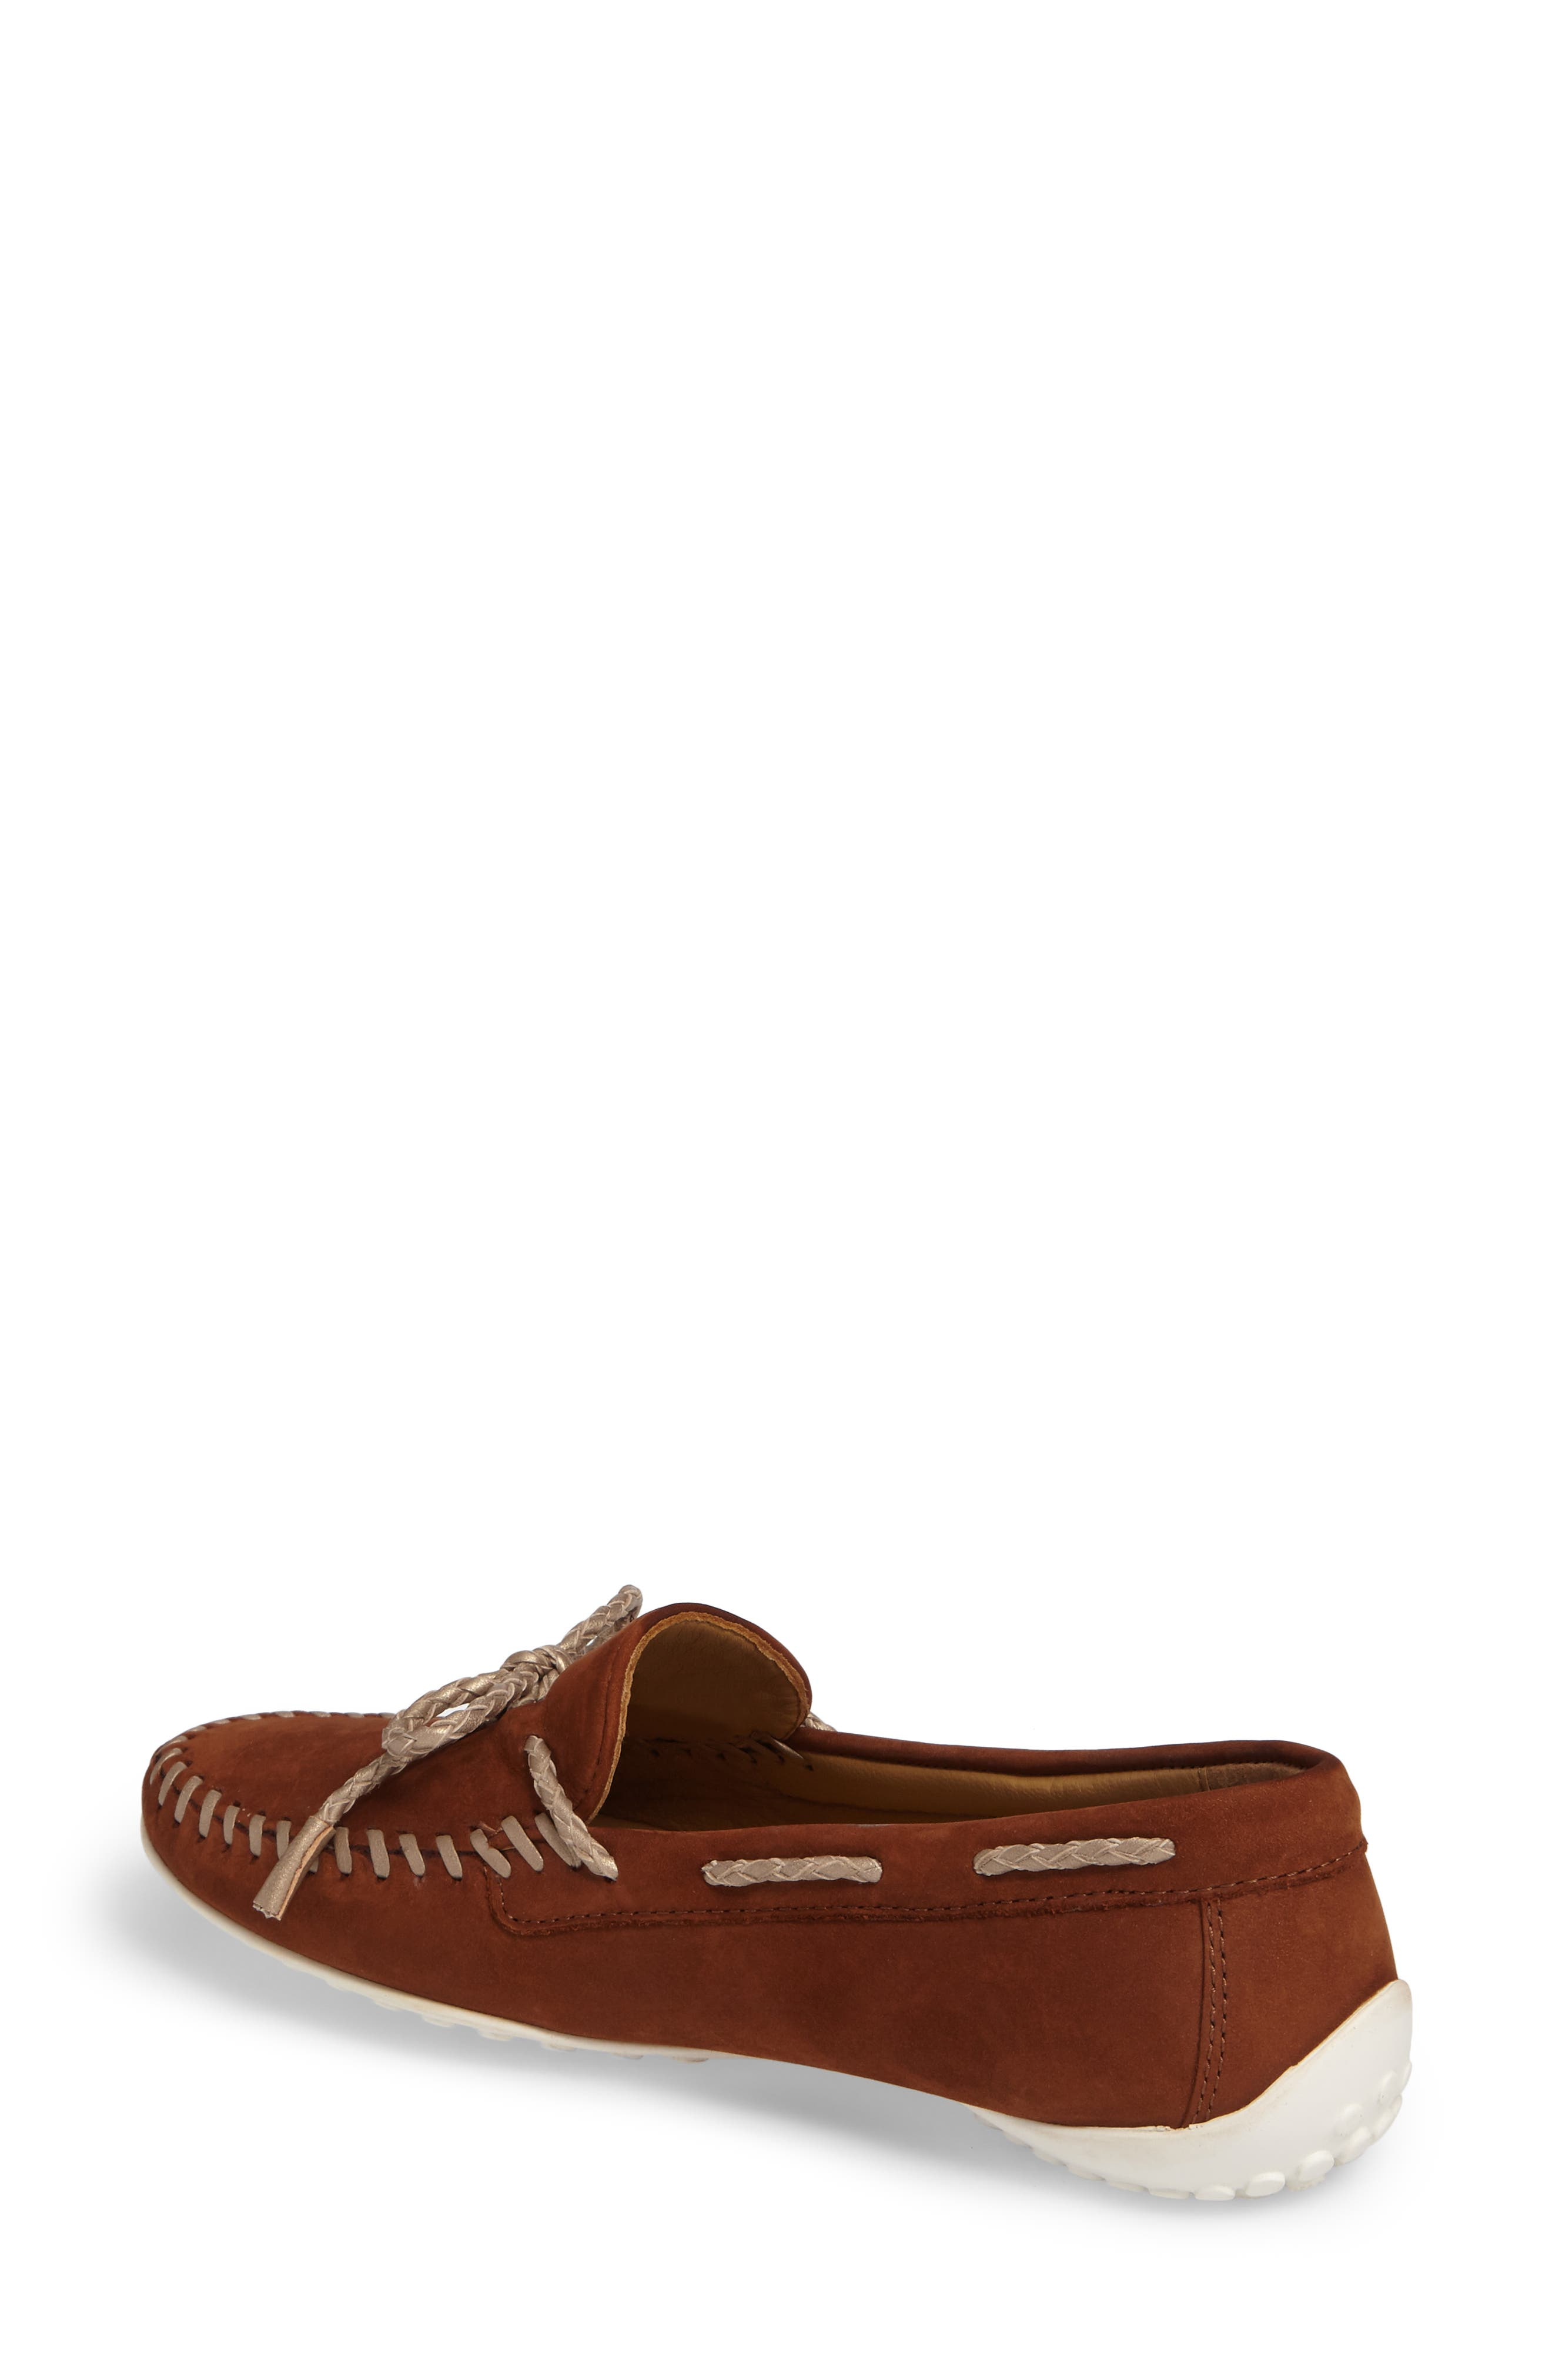 Zoe Water Resistant Moccasin,                             Alternate thumbnail 4, color,